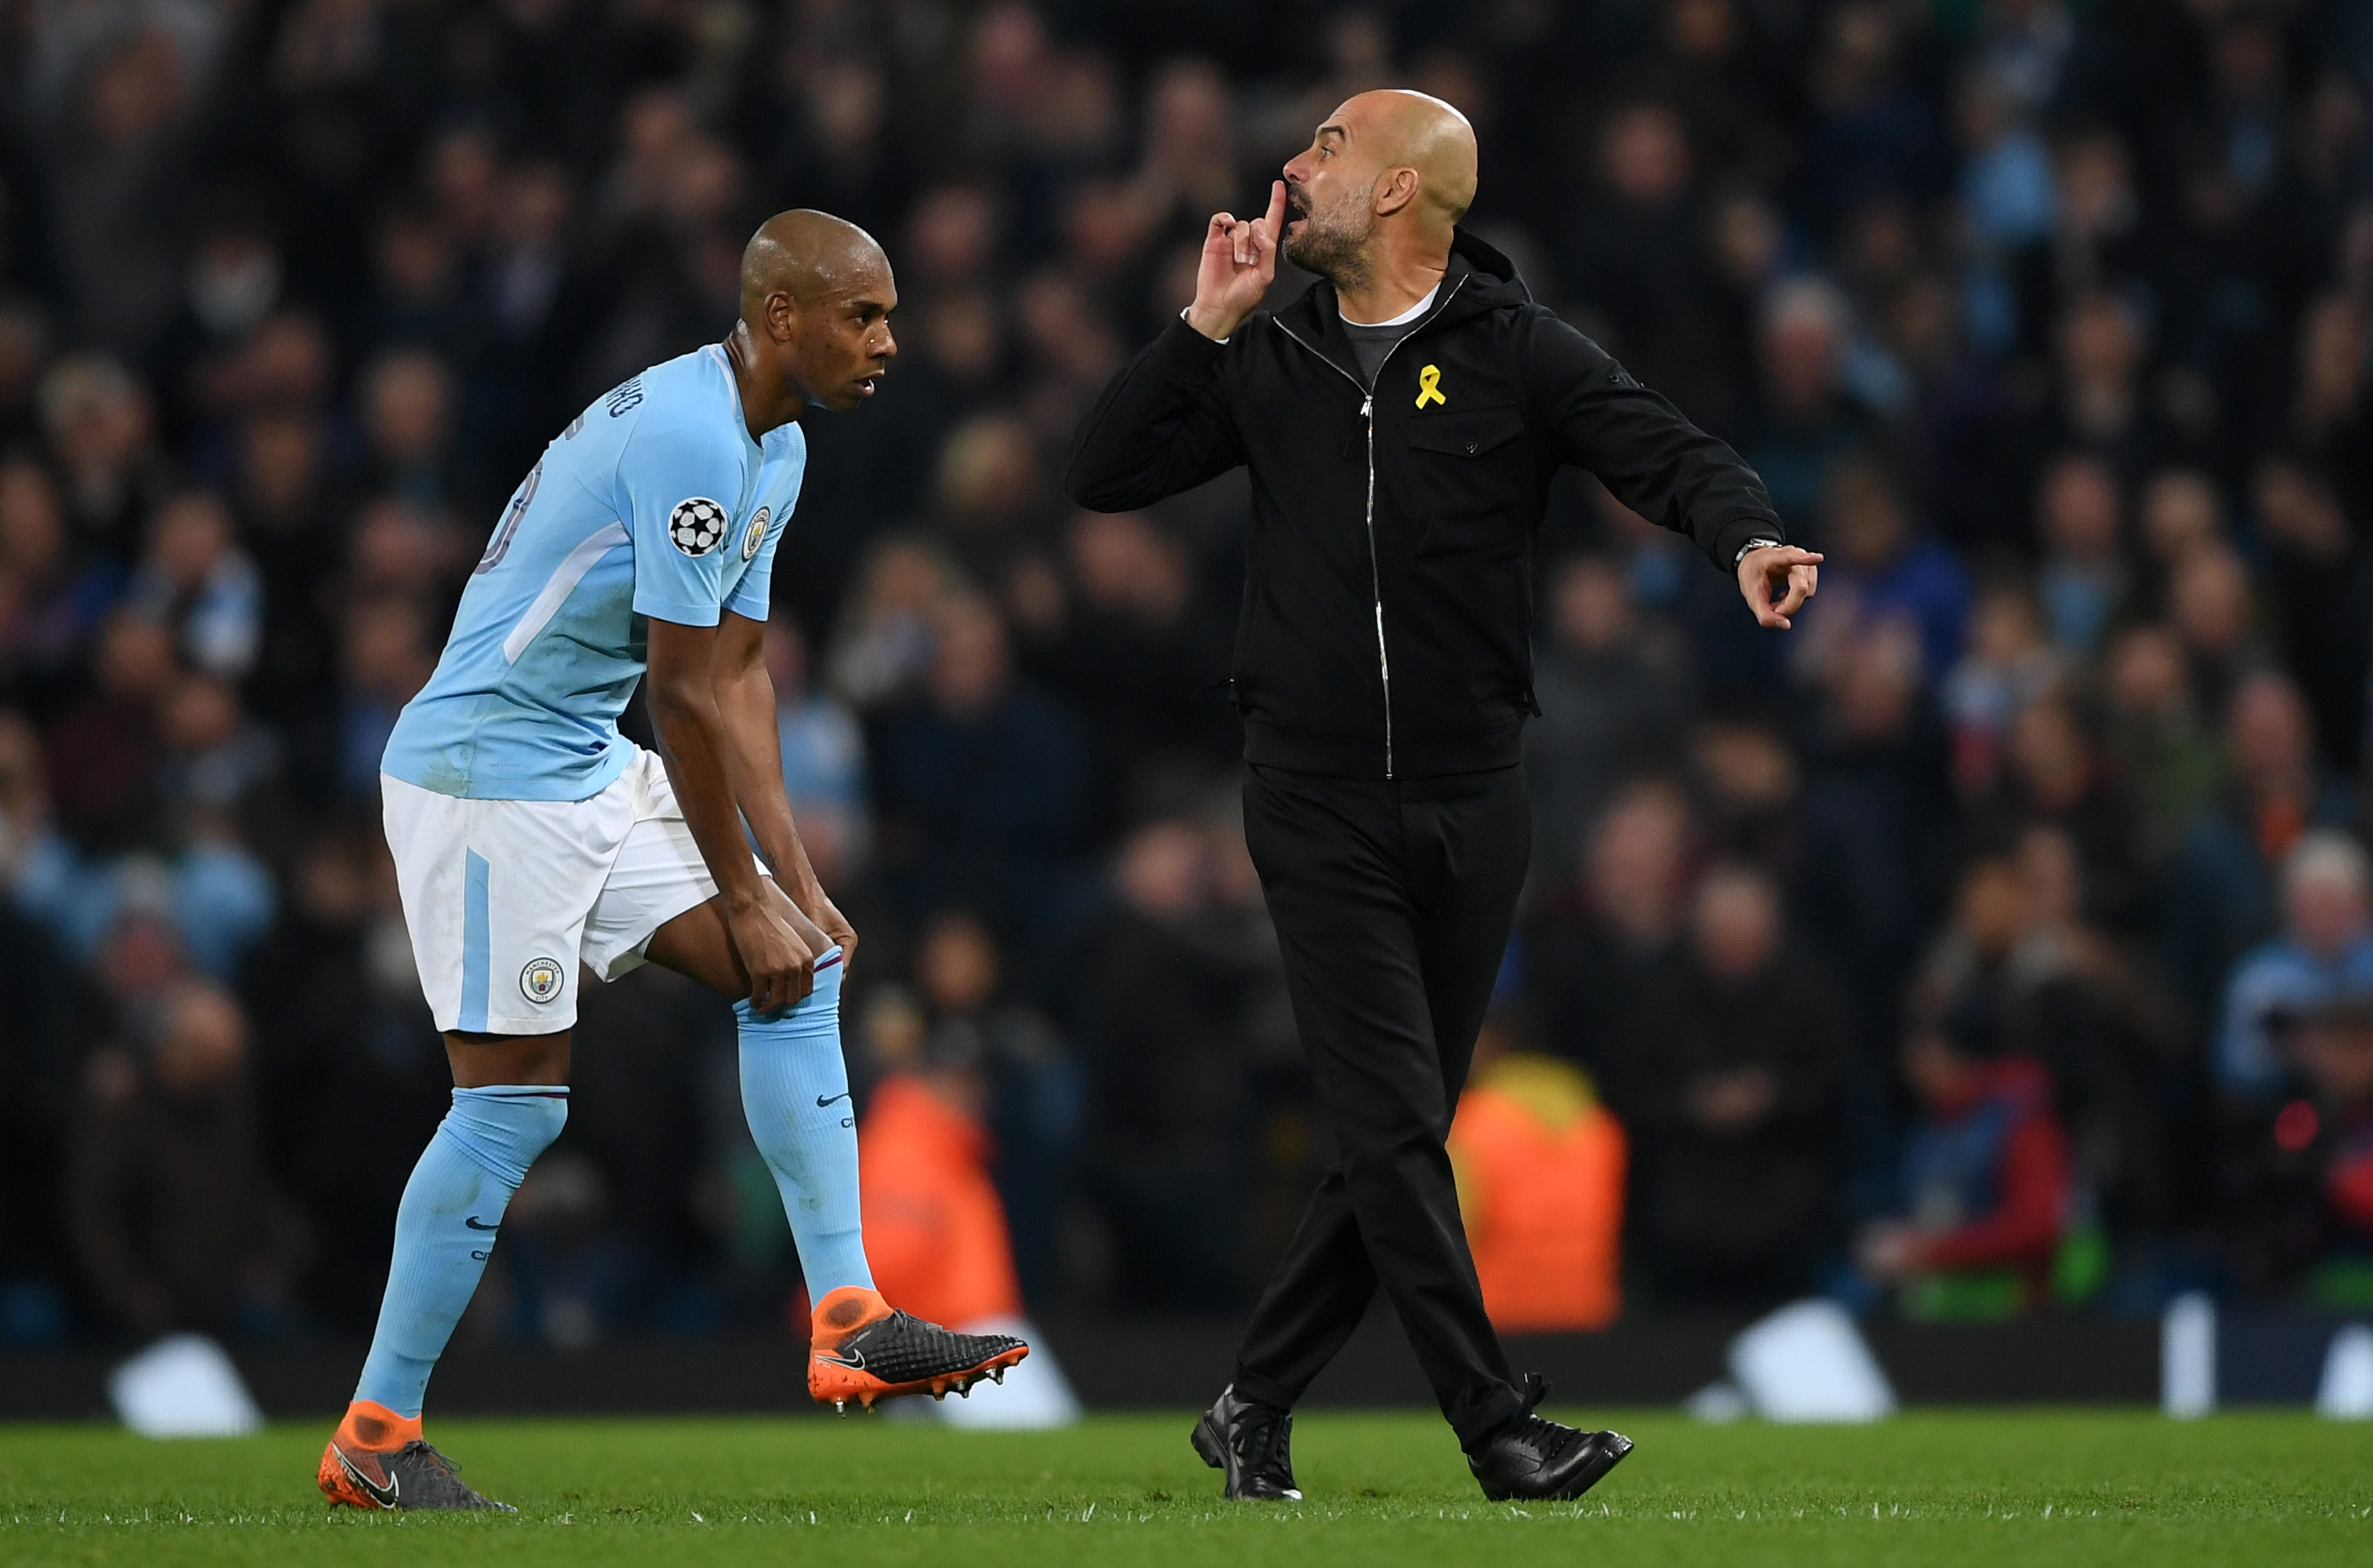 UEFA charges Manchester City boss Pep Guardiola with improper conduct